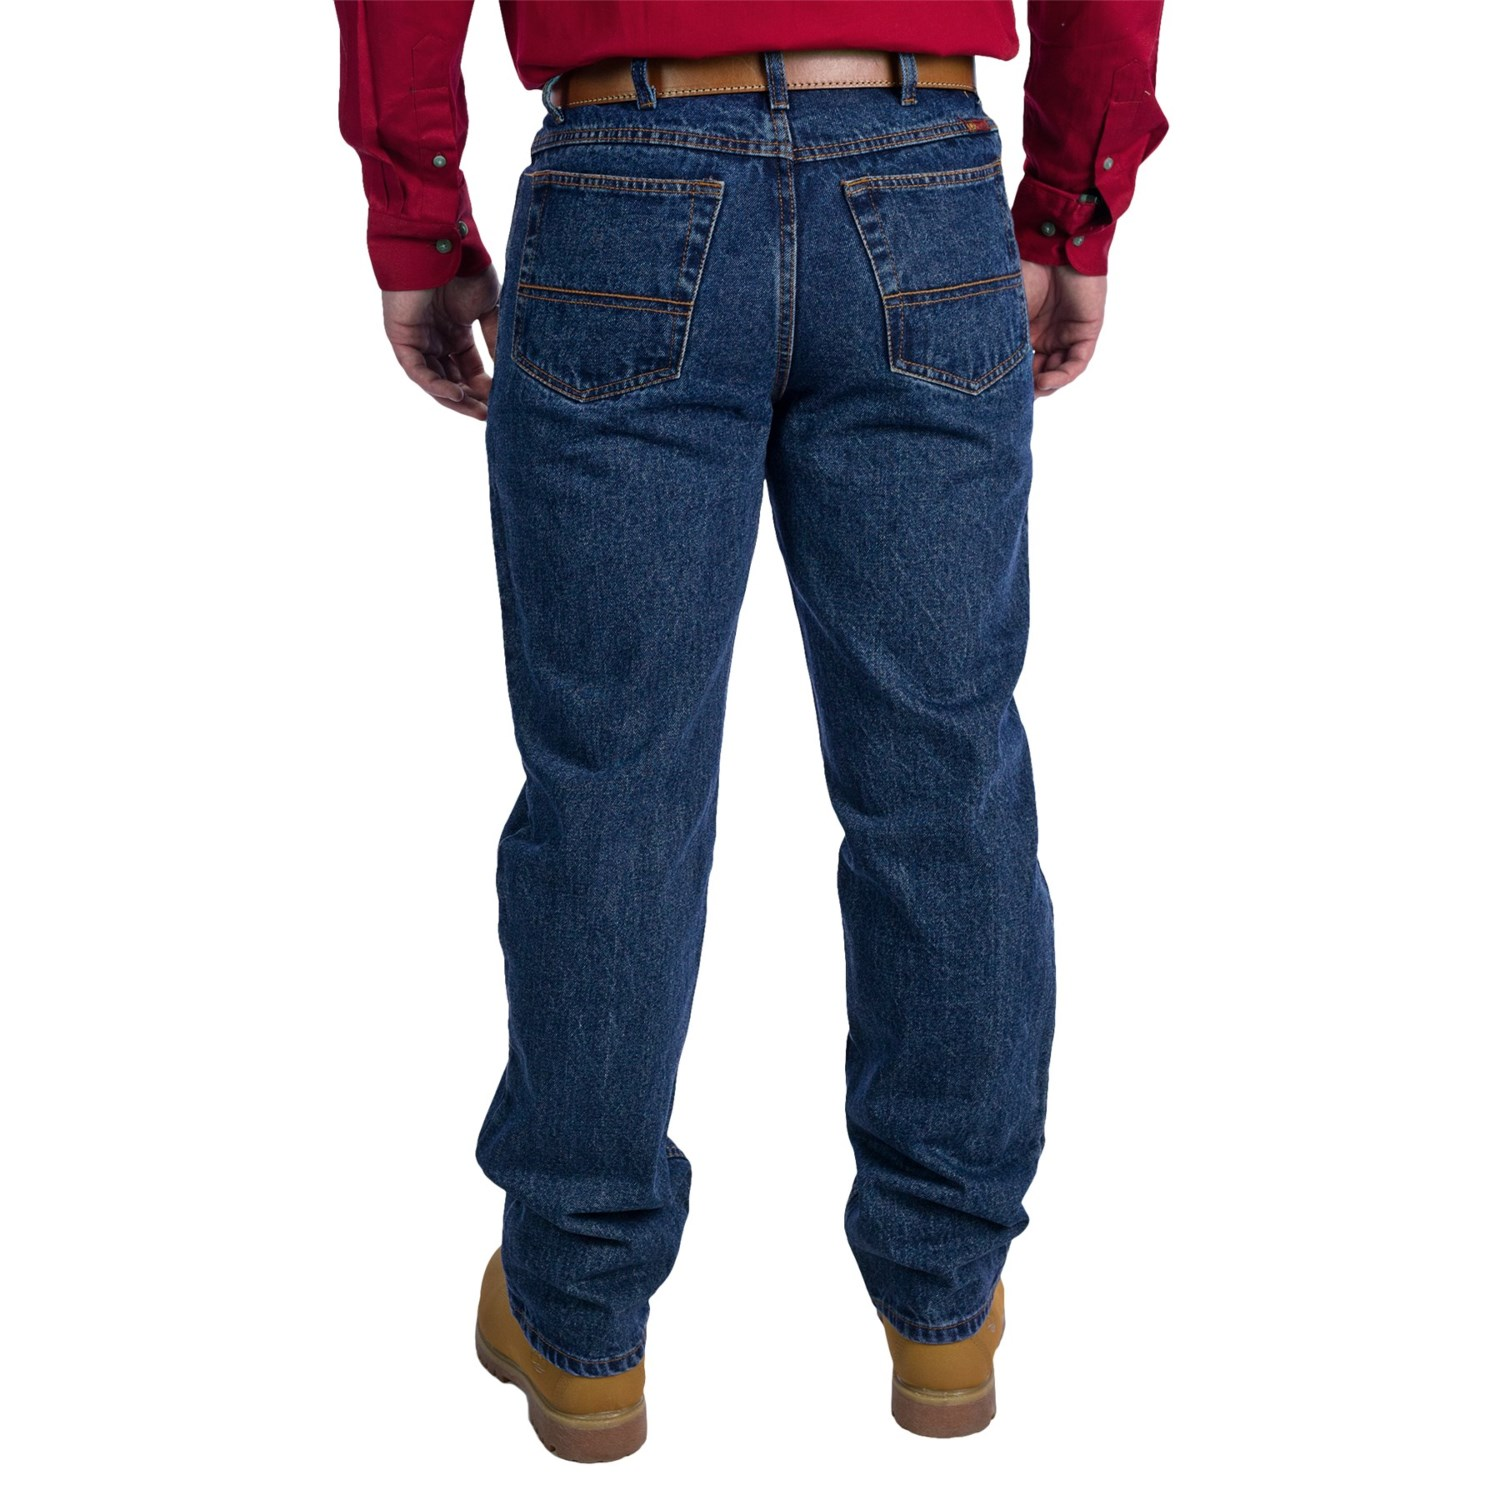 Relaxed Fit Bootcut Jeans For Men